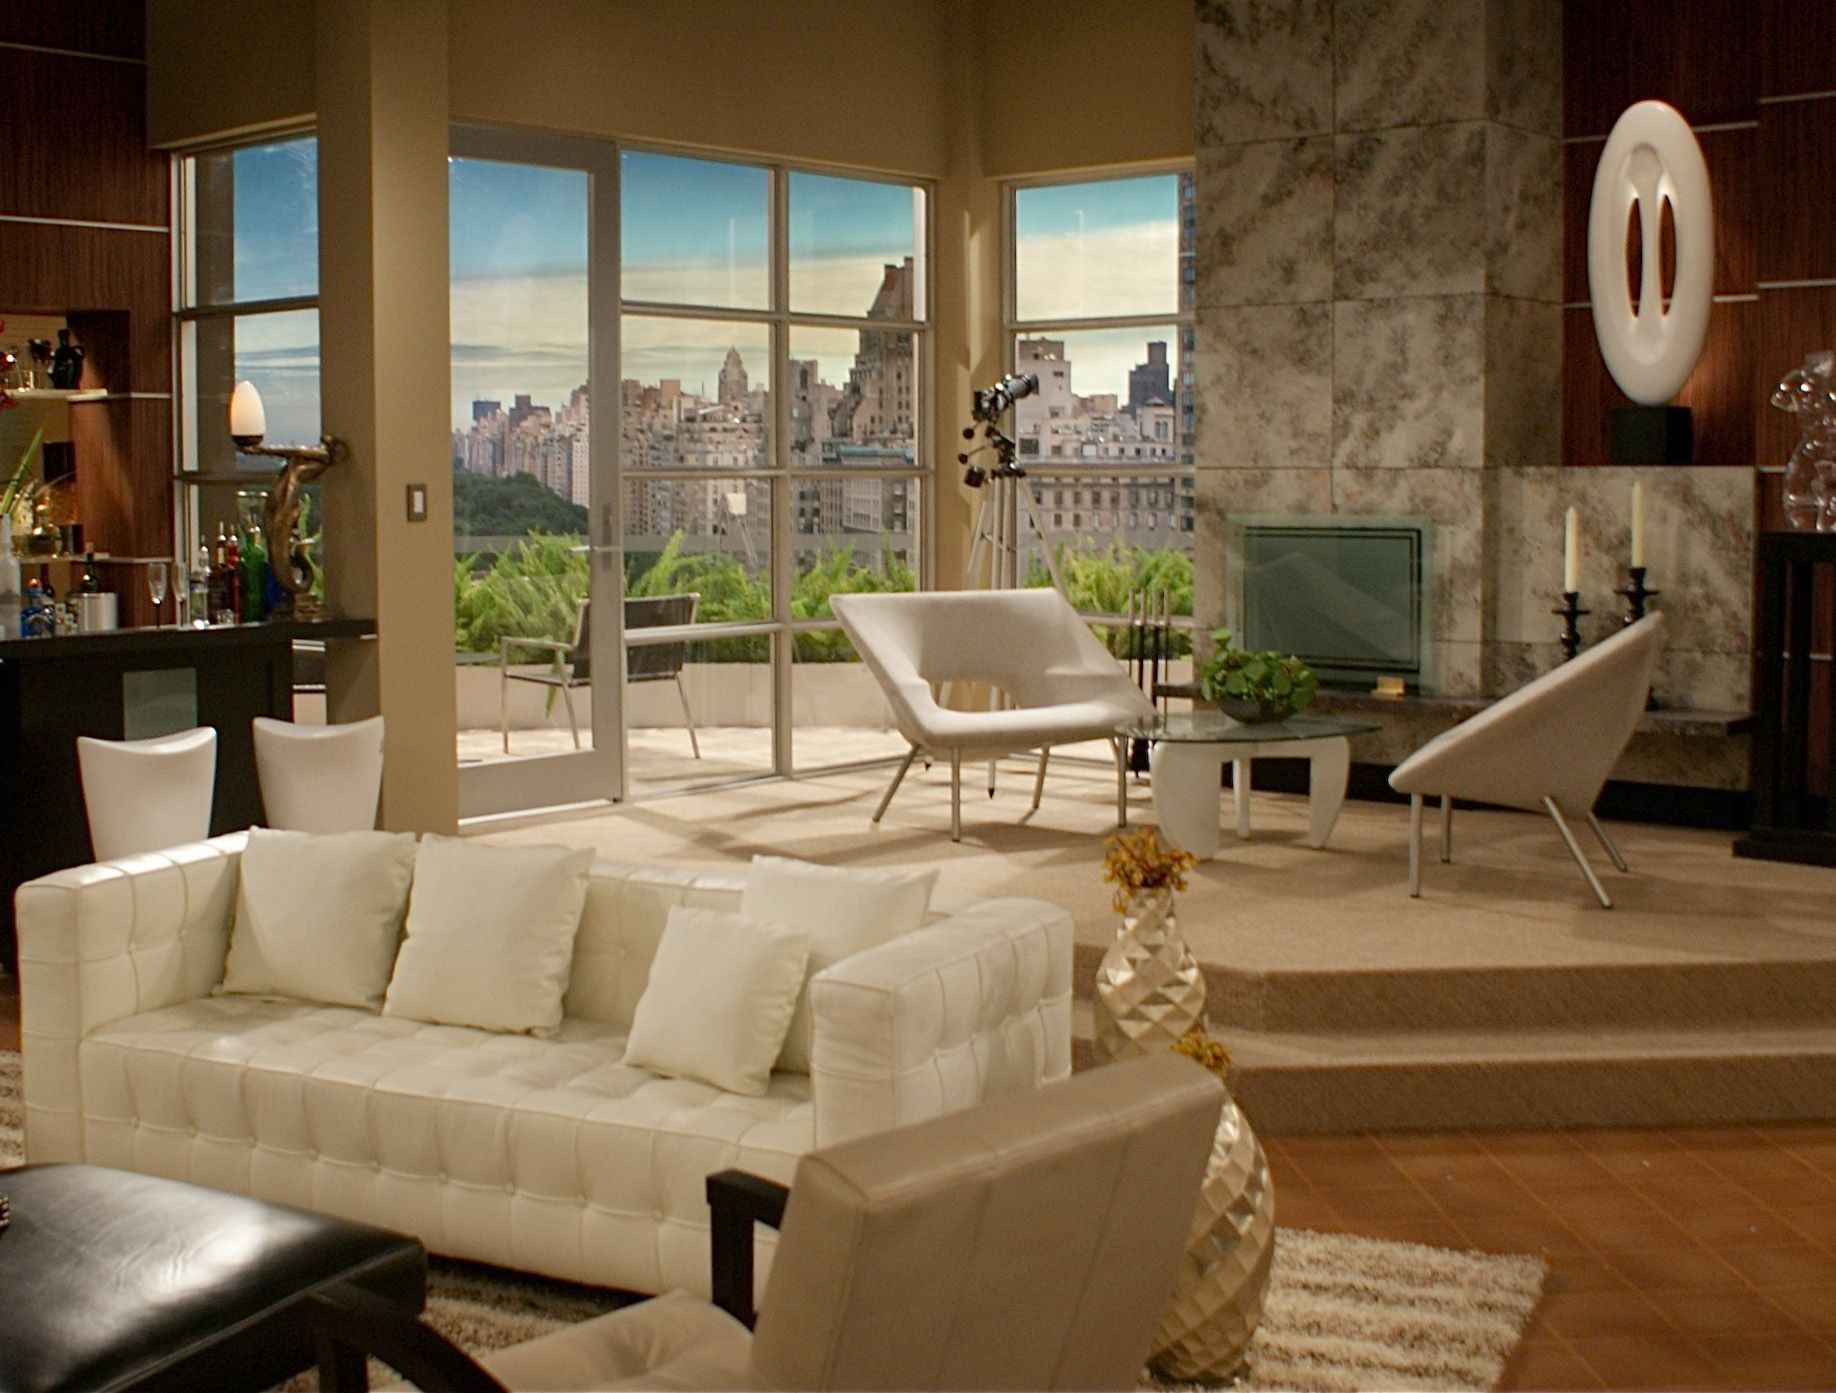 Russell S Apartment On Rules Of Engagement Favorite Rooms